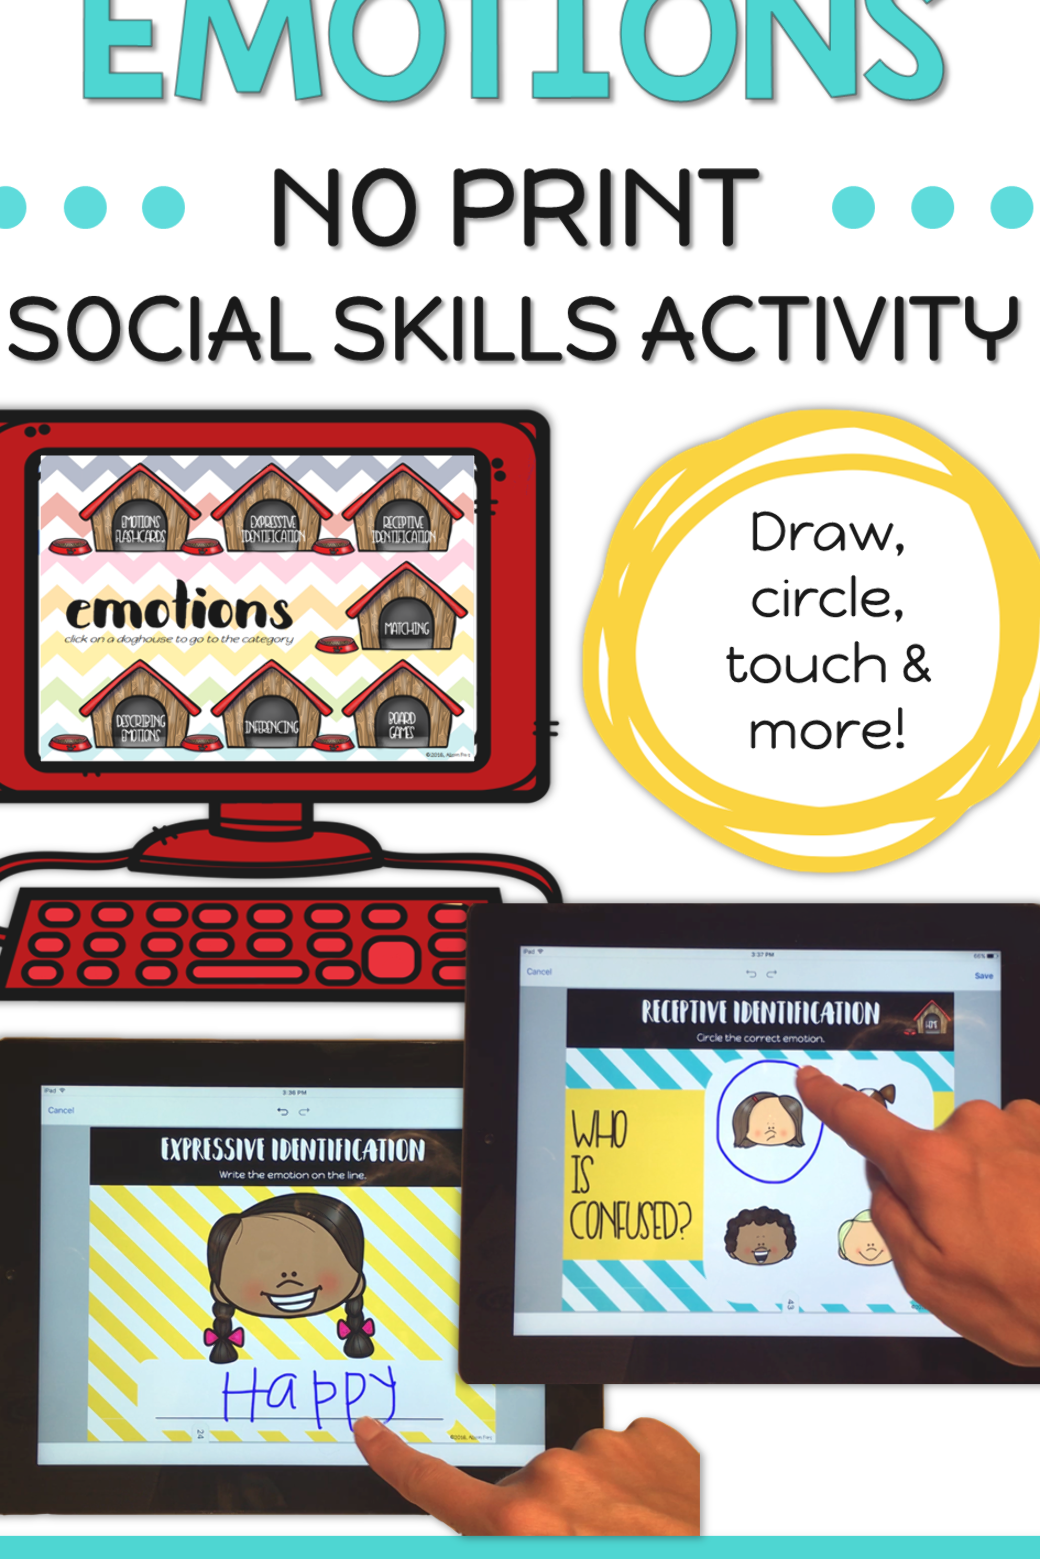 Emotions activities for kids. Identifying and expressing